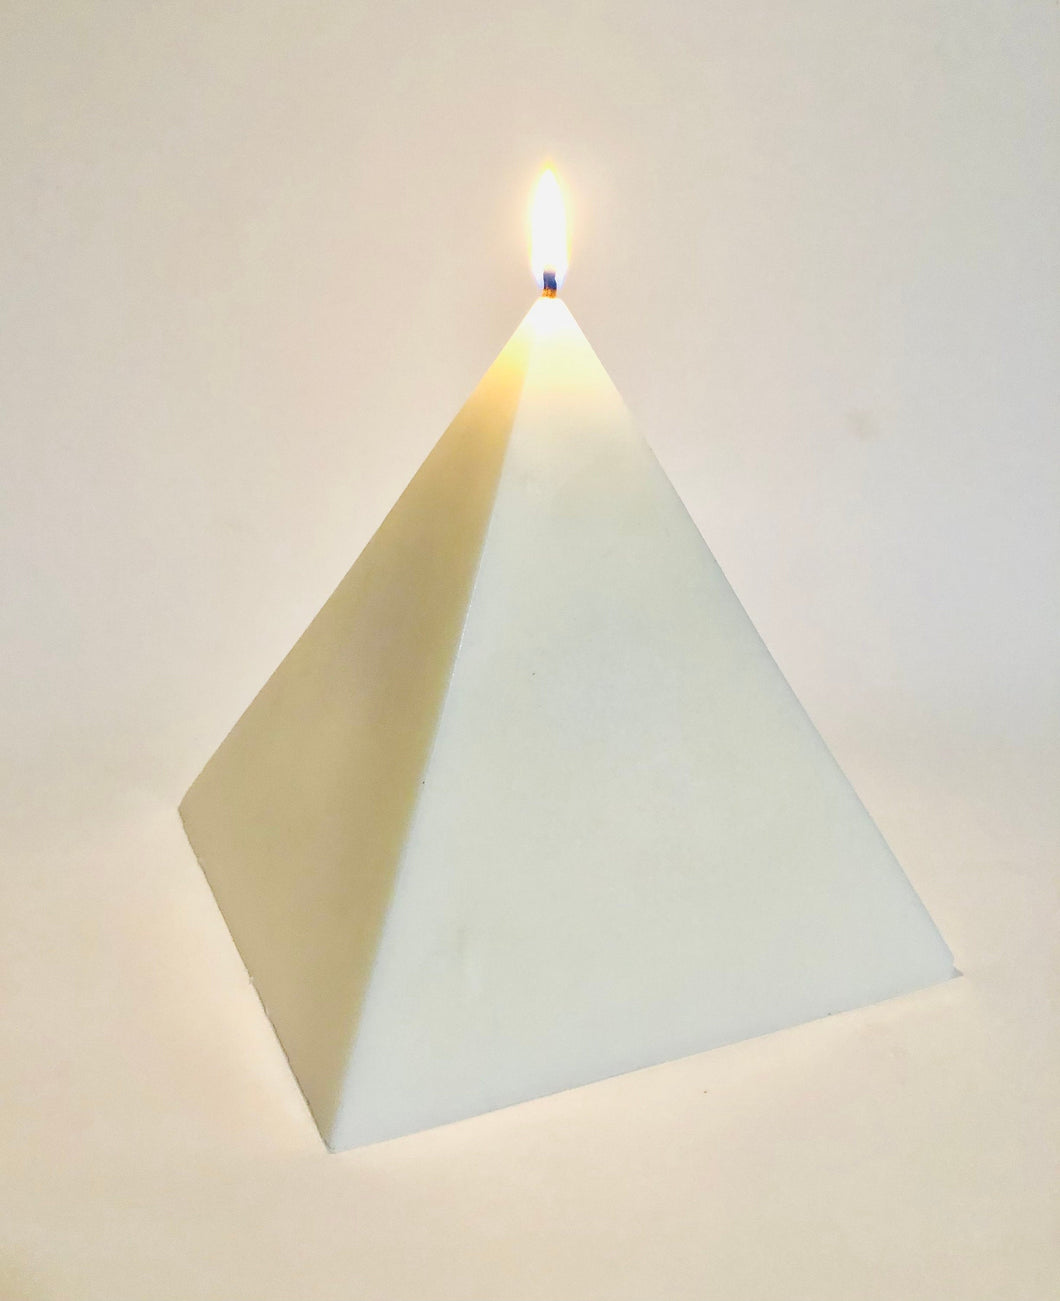 Pyramid Candle Handmade 40 Oz Soy Candle